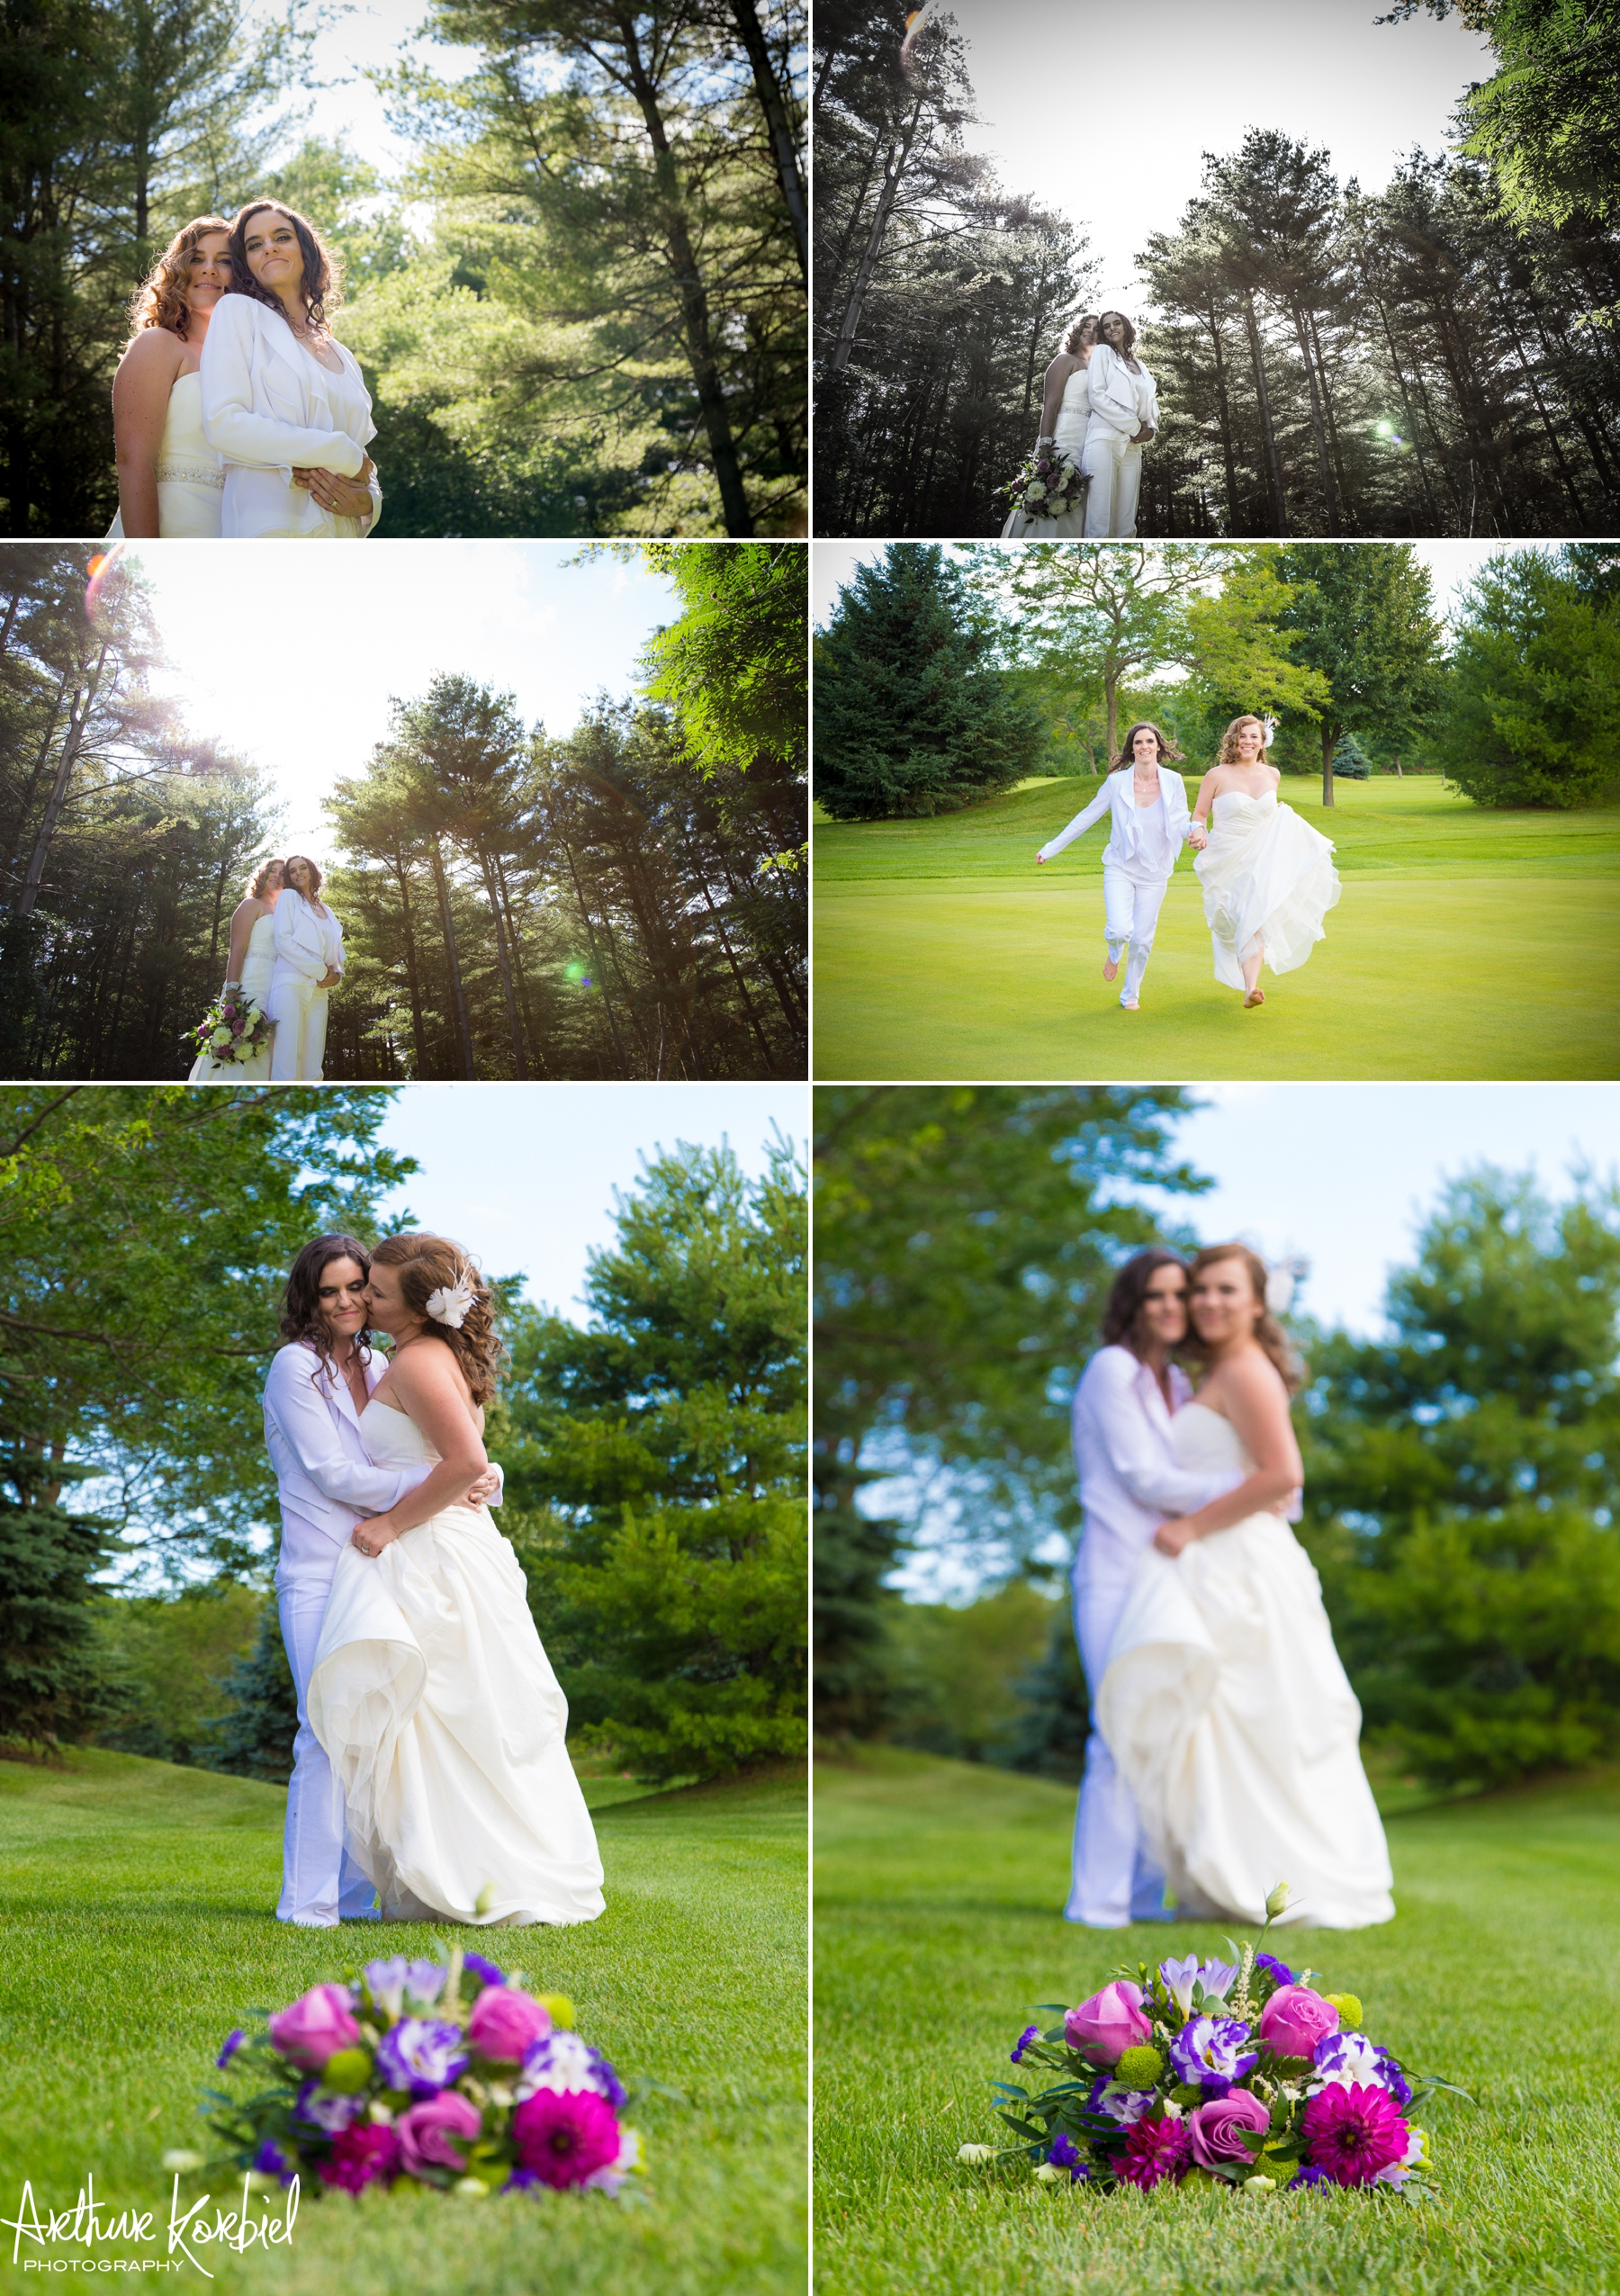 Same-Sex Wedding - Kettle Creek Golf Club - Port Stanley Beach - Arthur Korbiel Photography - London Wedding Photographer_016.jpg